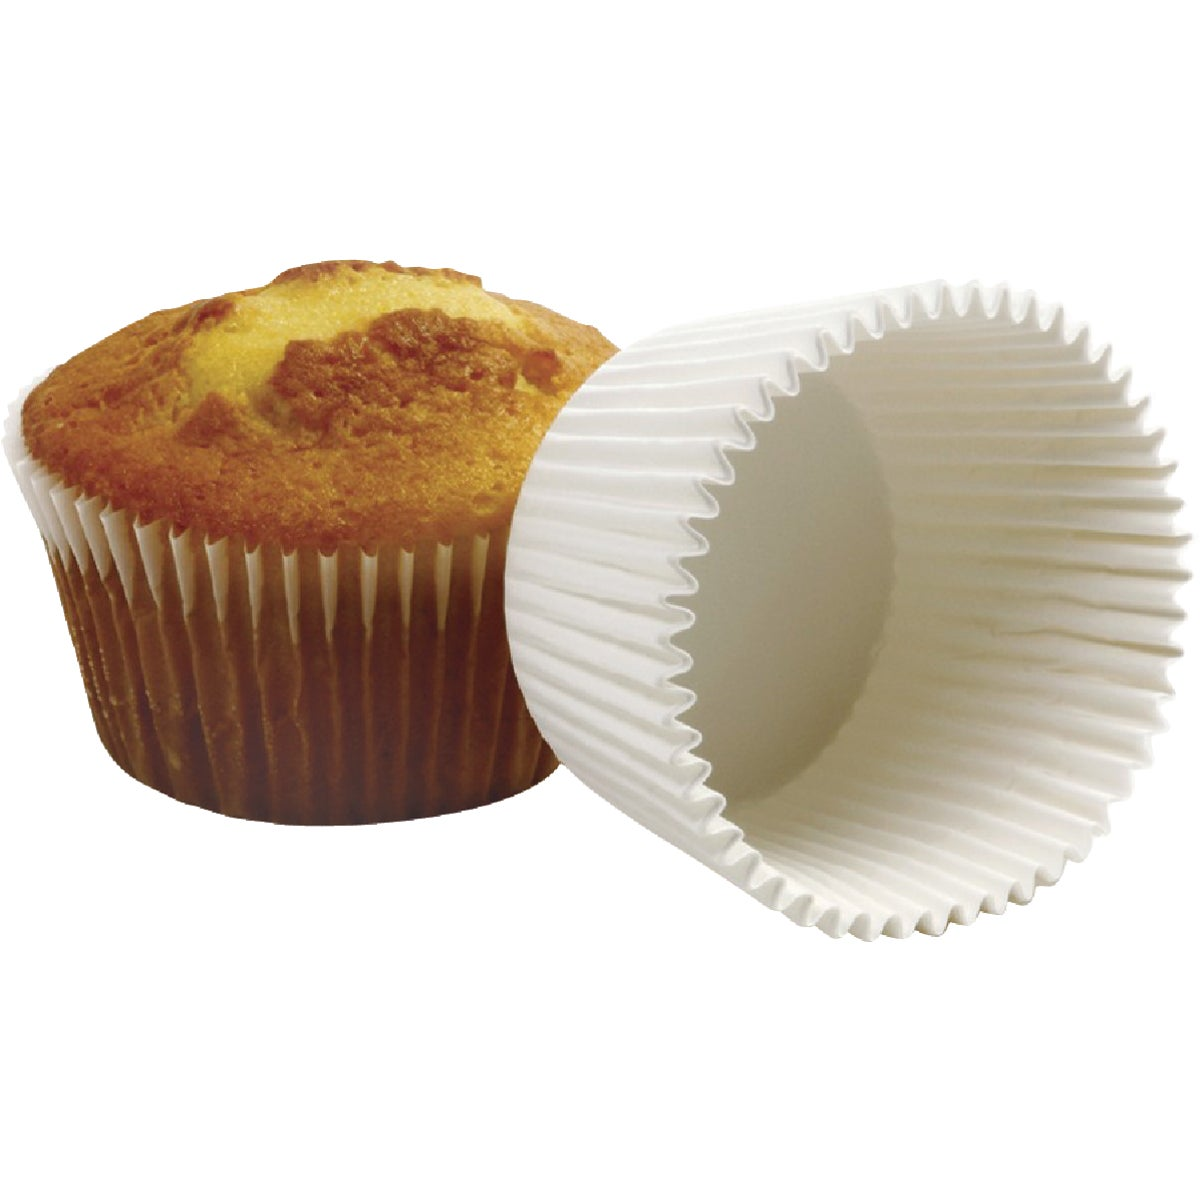 "2"" MUFFIN BAKING CUP"